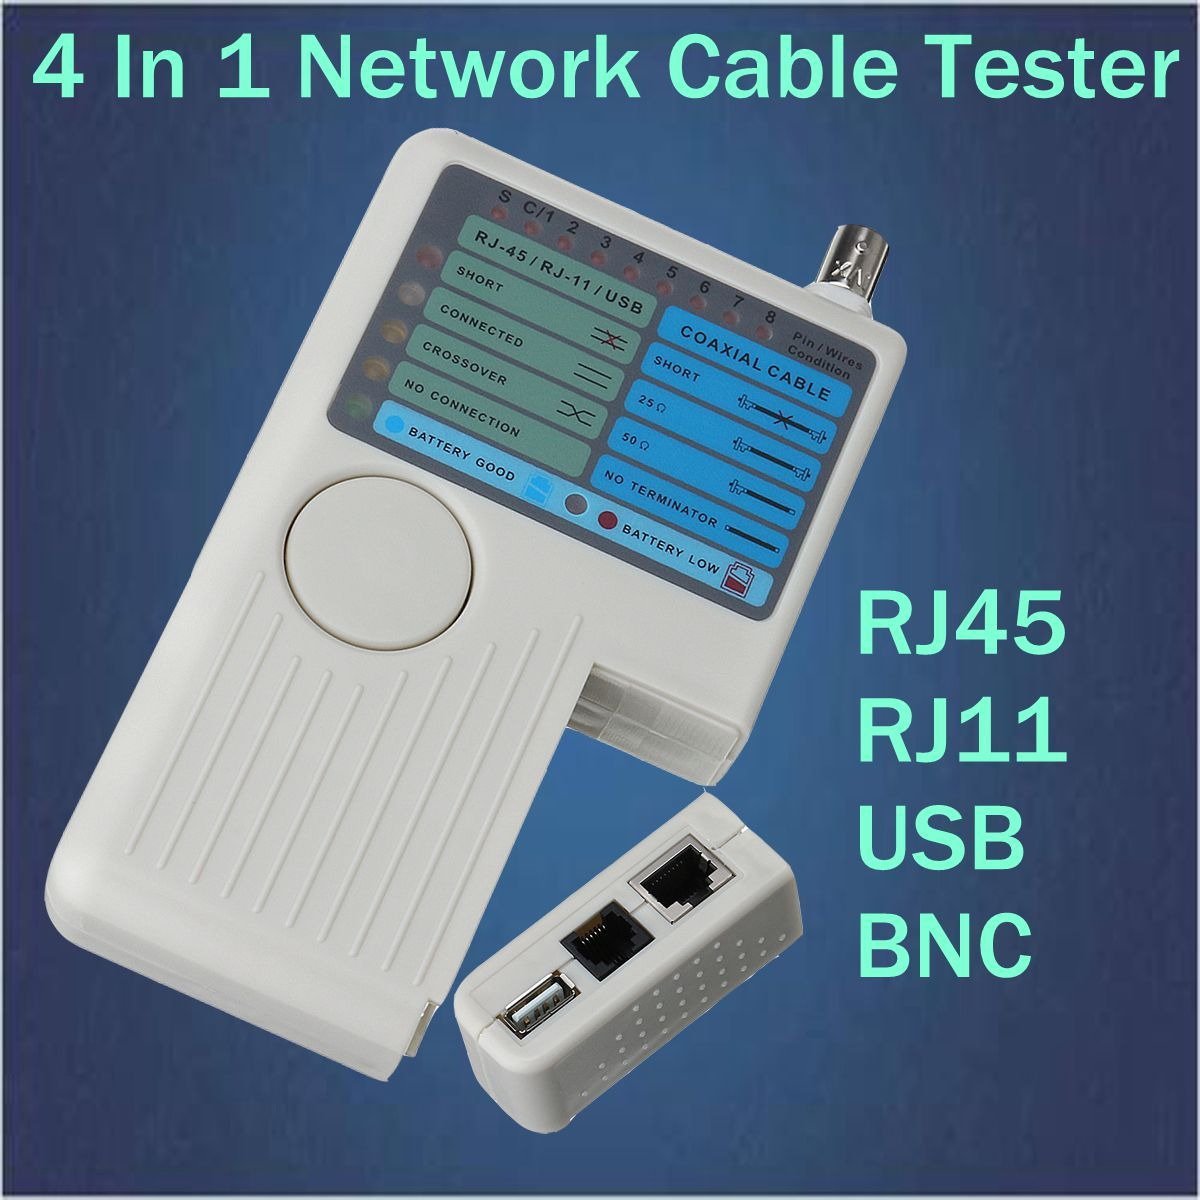 hight resolution of 4 in 1 network cable rj45 rj11 usb bnc lan cable cat5 cat6 wire network cable tester banggood 4 in 1 network cable rj45 rj11 usb bnc lan cable